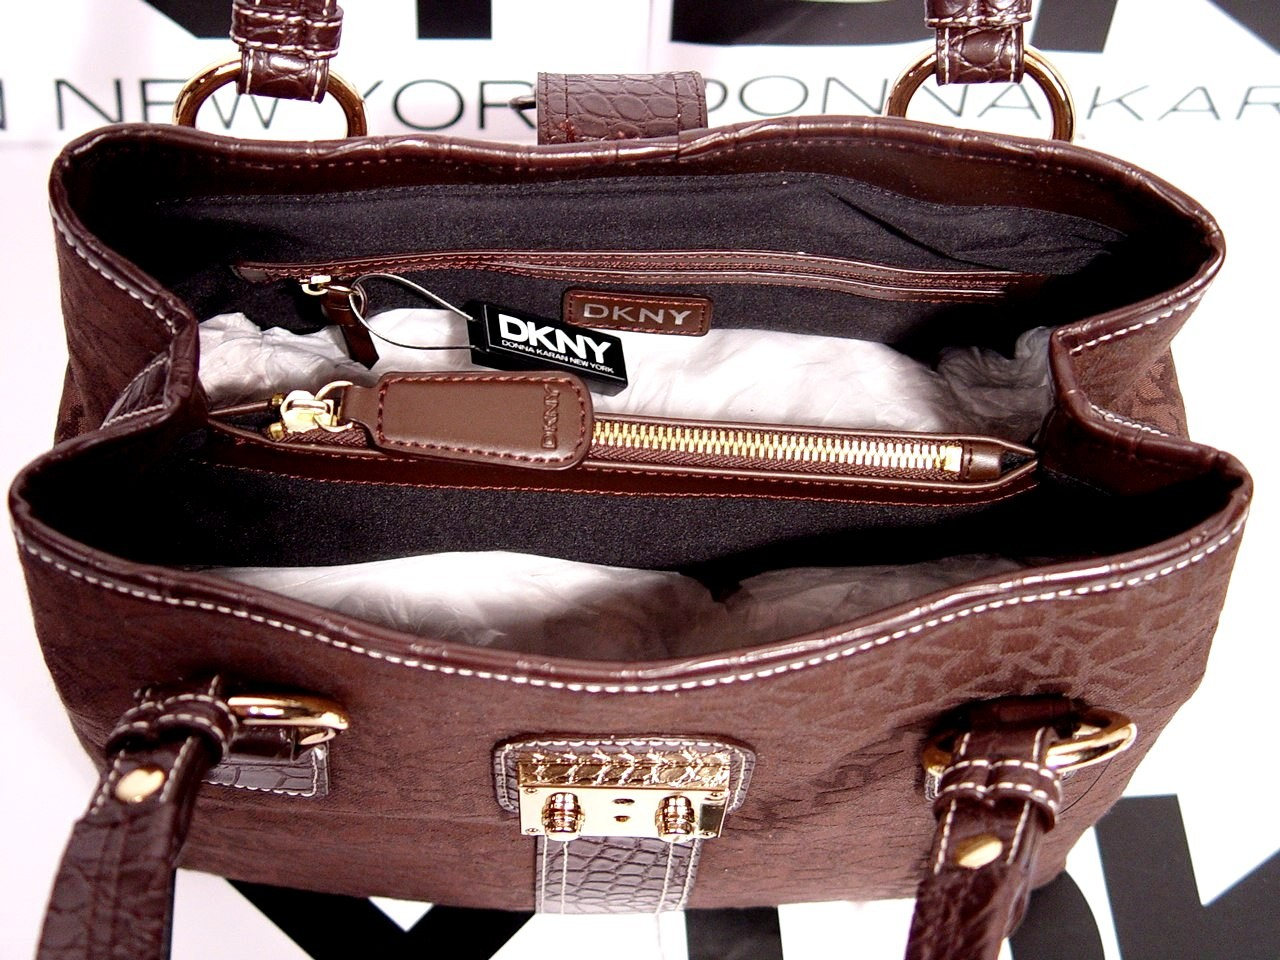 DKNY Signature Brown Medium Satchel Handbag ~ RM750